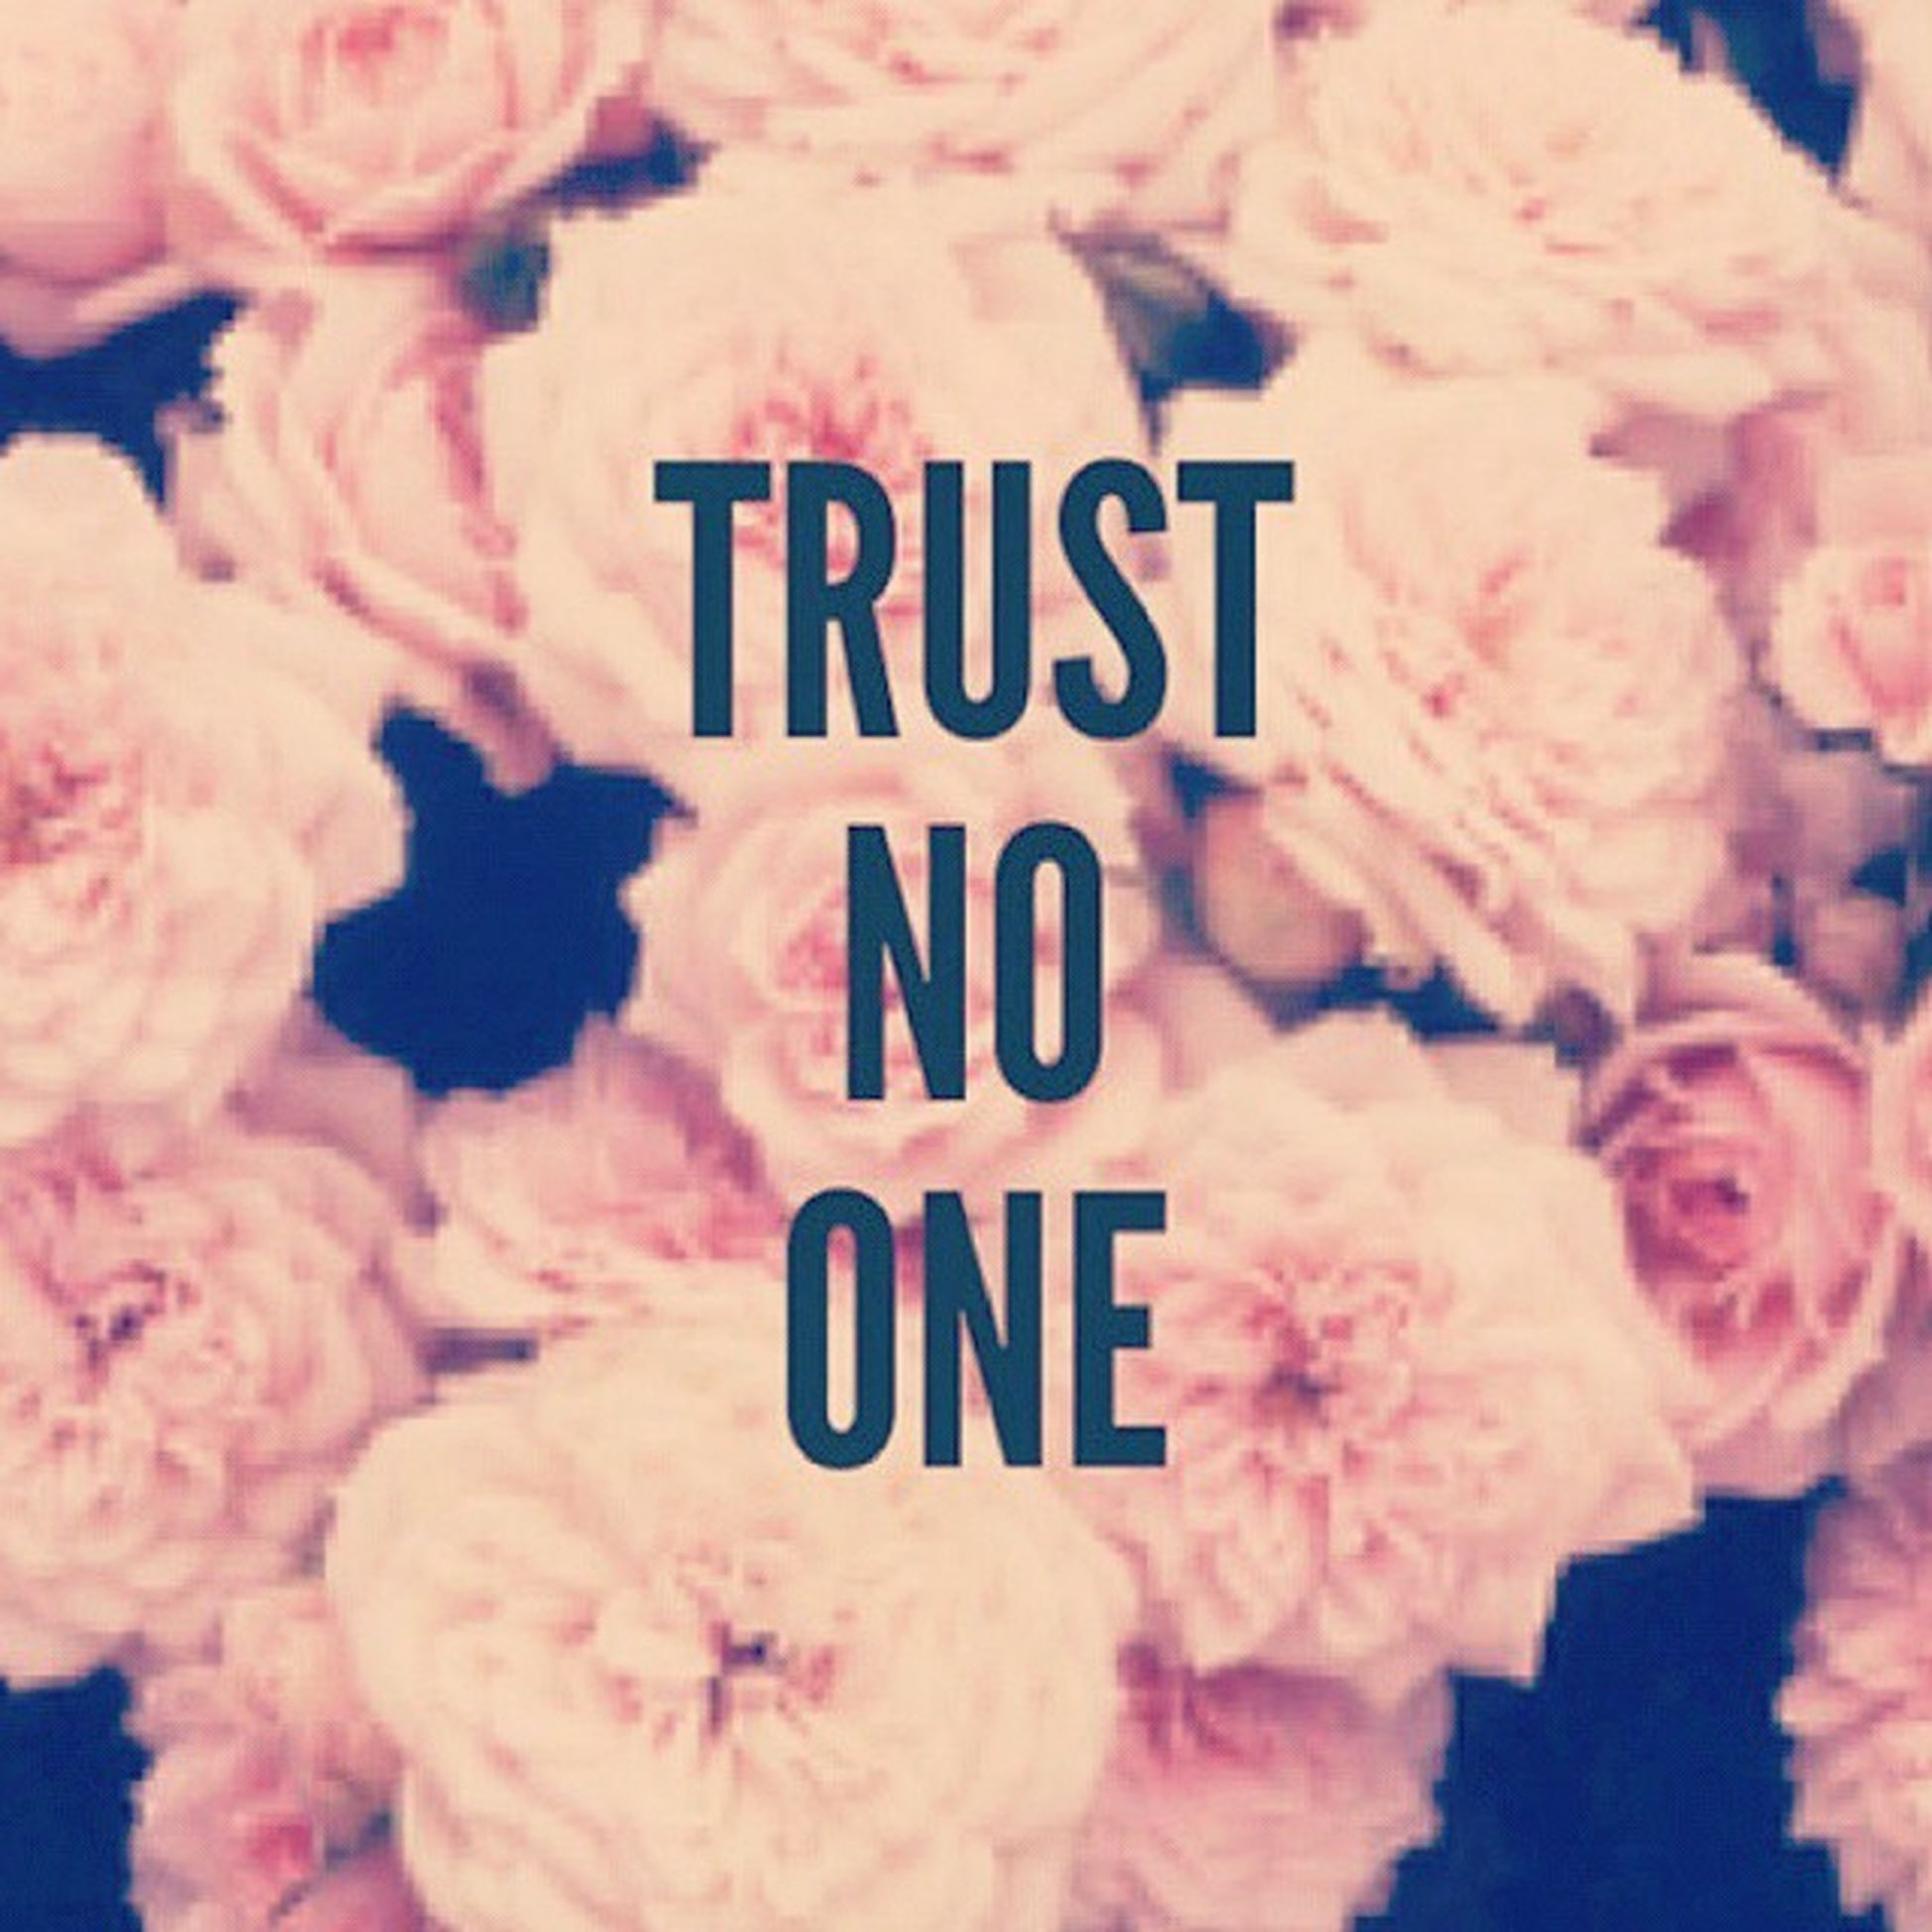 Life Truth Trust No_one be_real be_free just be yolo ♡ trust nobody but yourself ♡